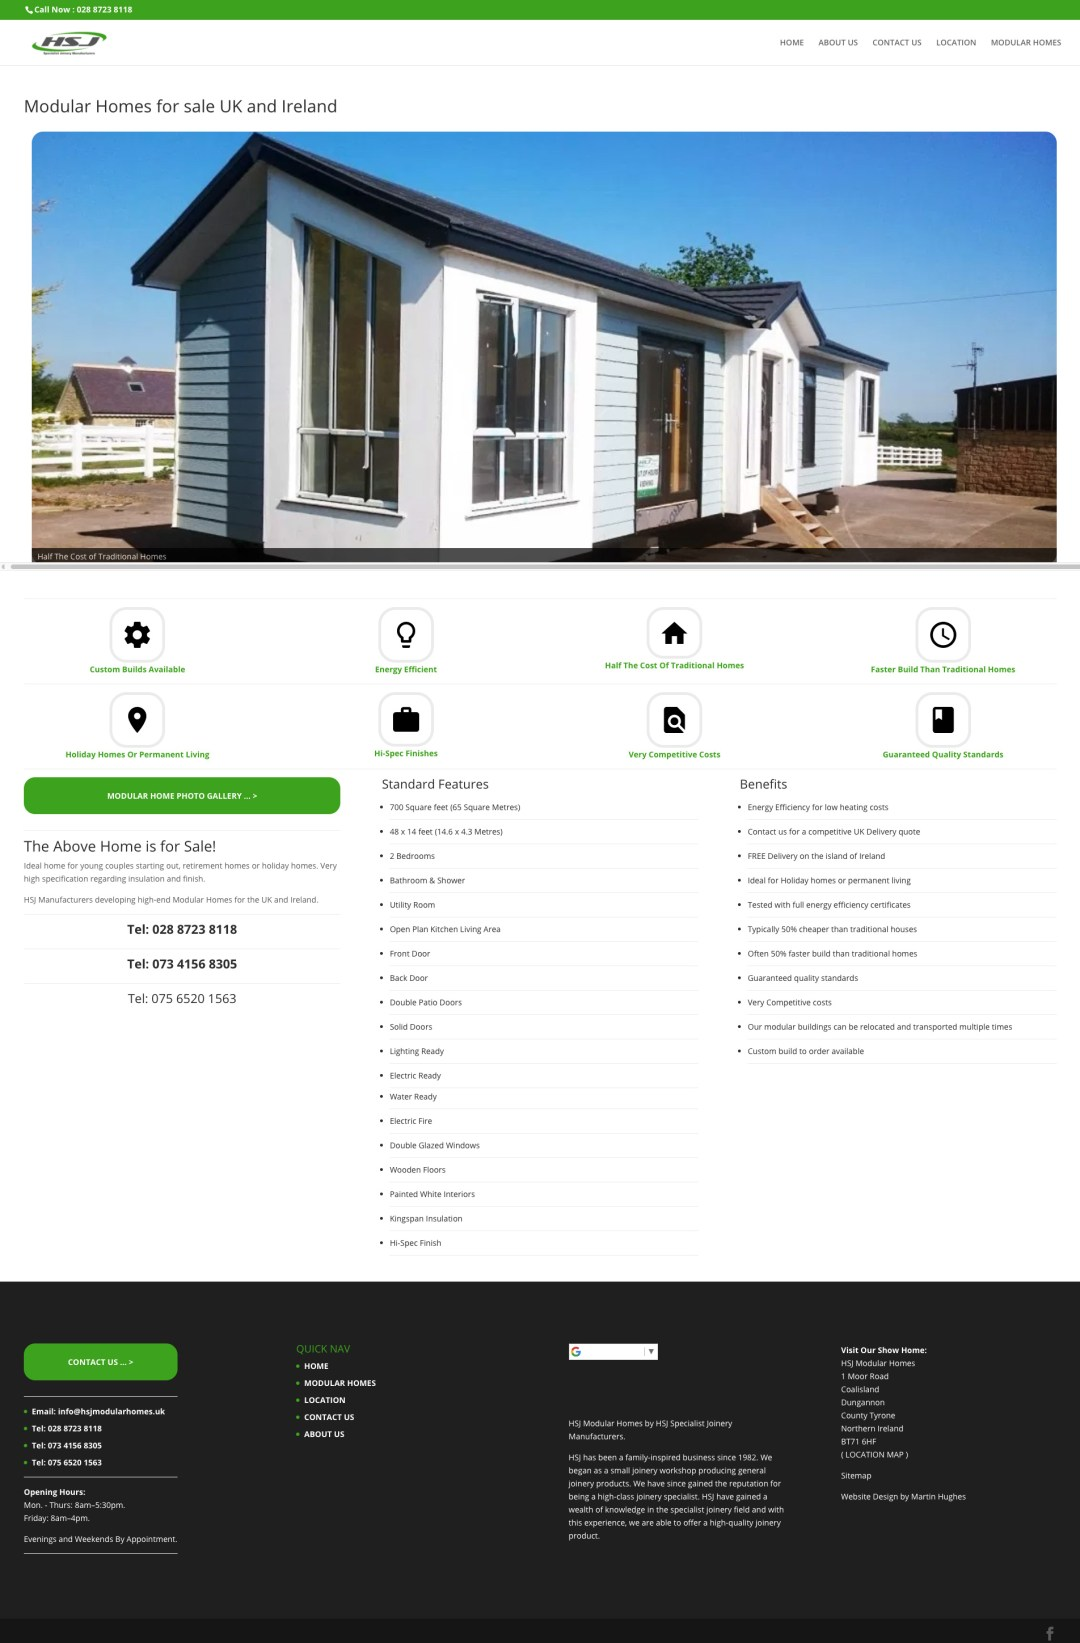 HSJ Modular Homes website screenshot